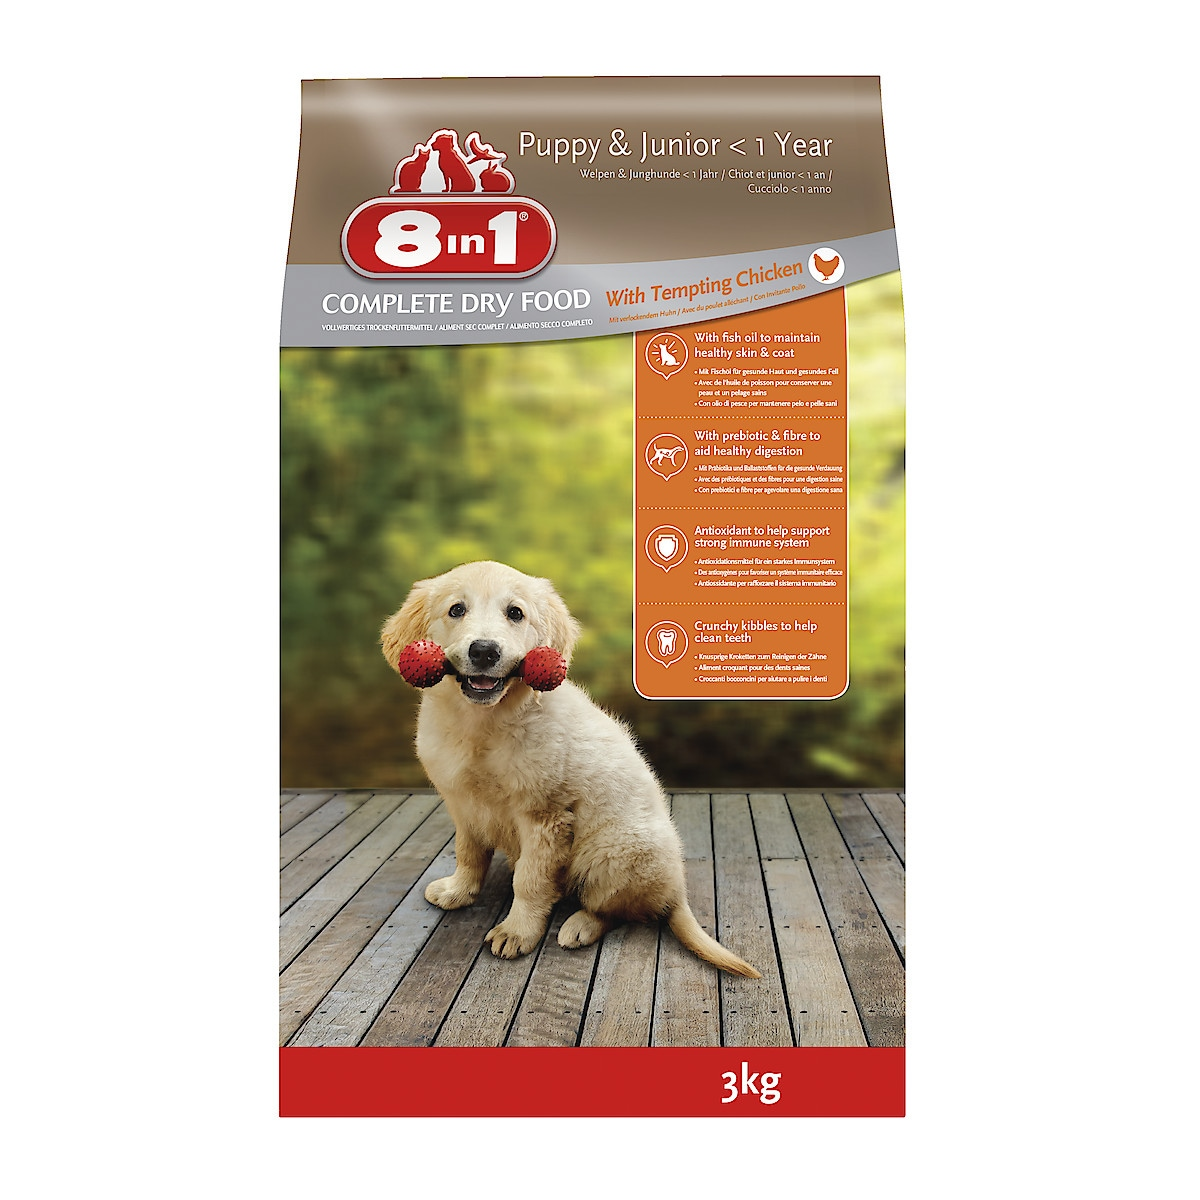 Hundfoder Puppy & Junior Chicken 8in1